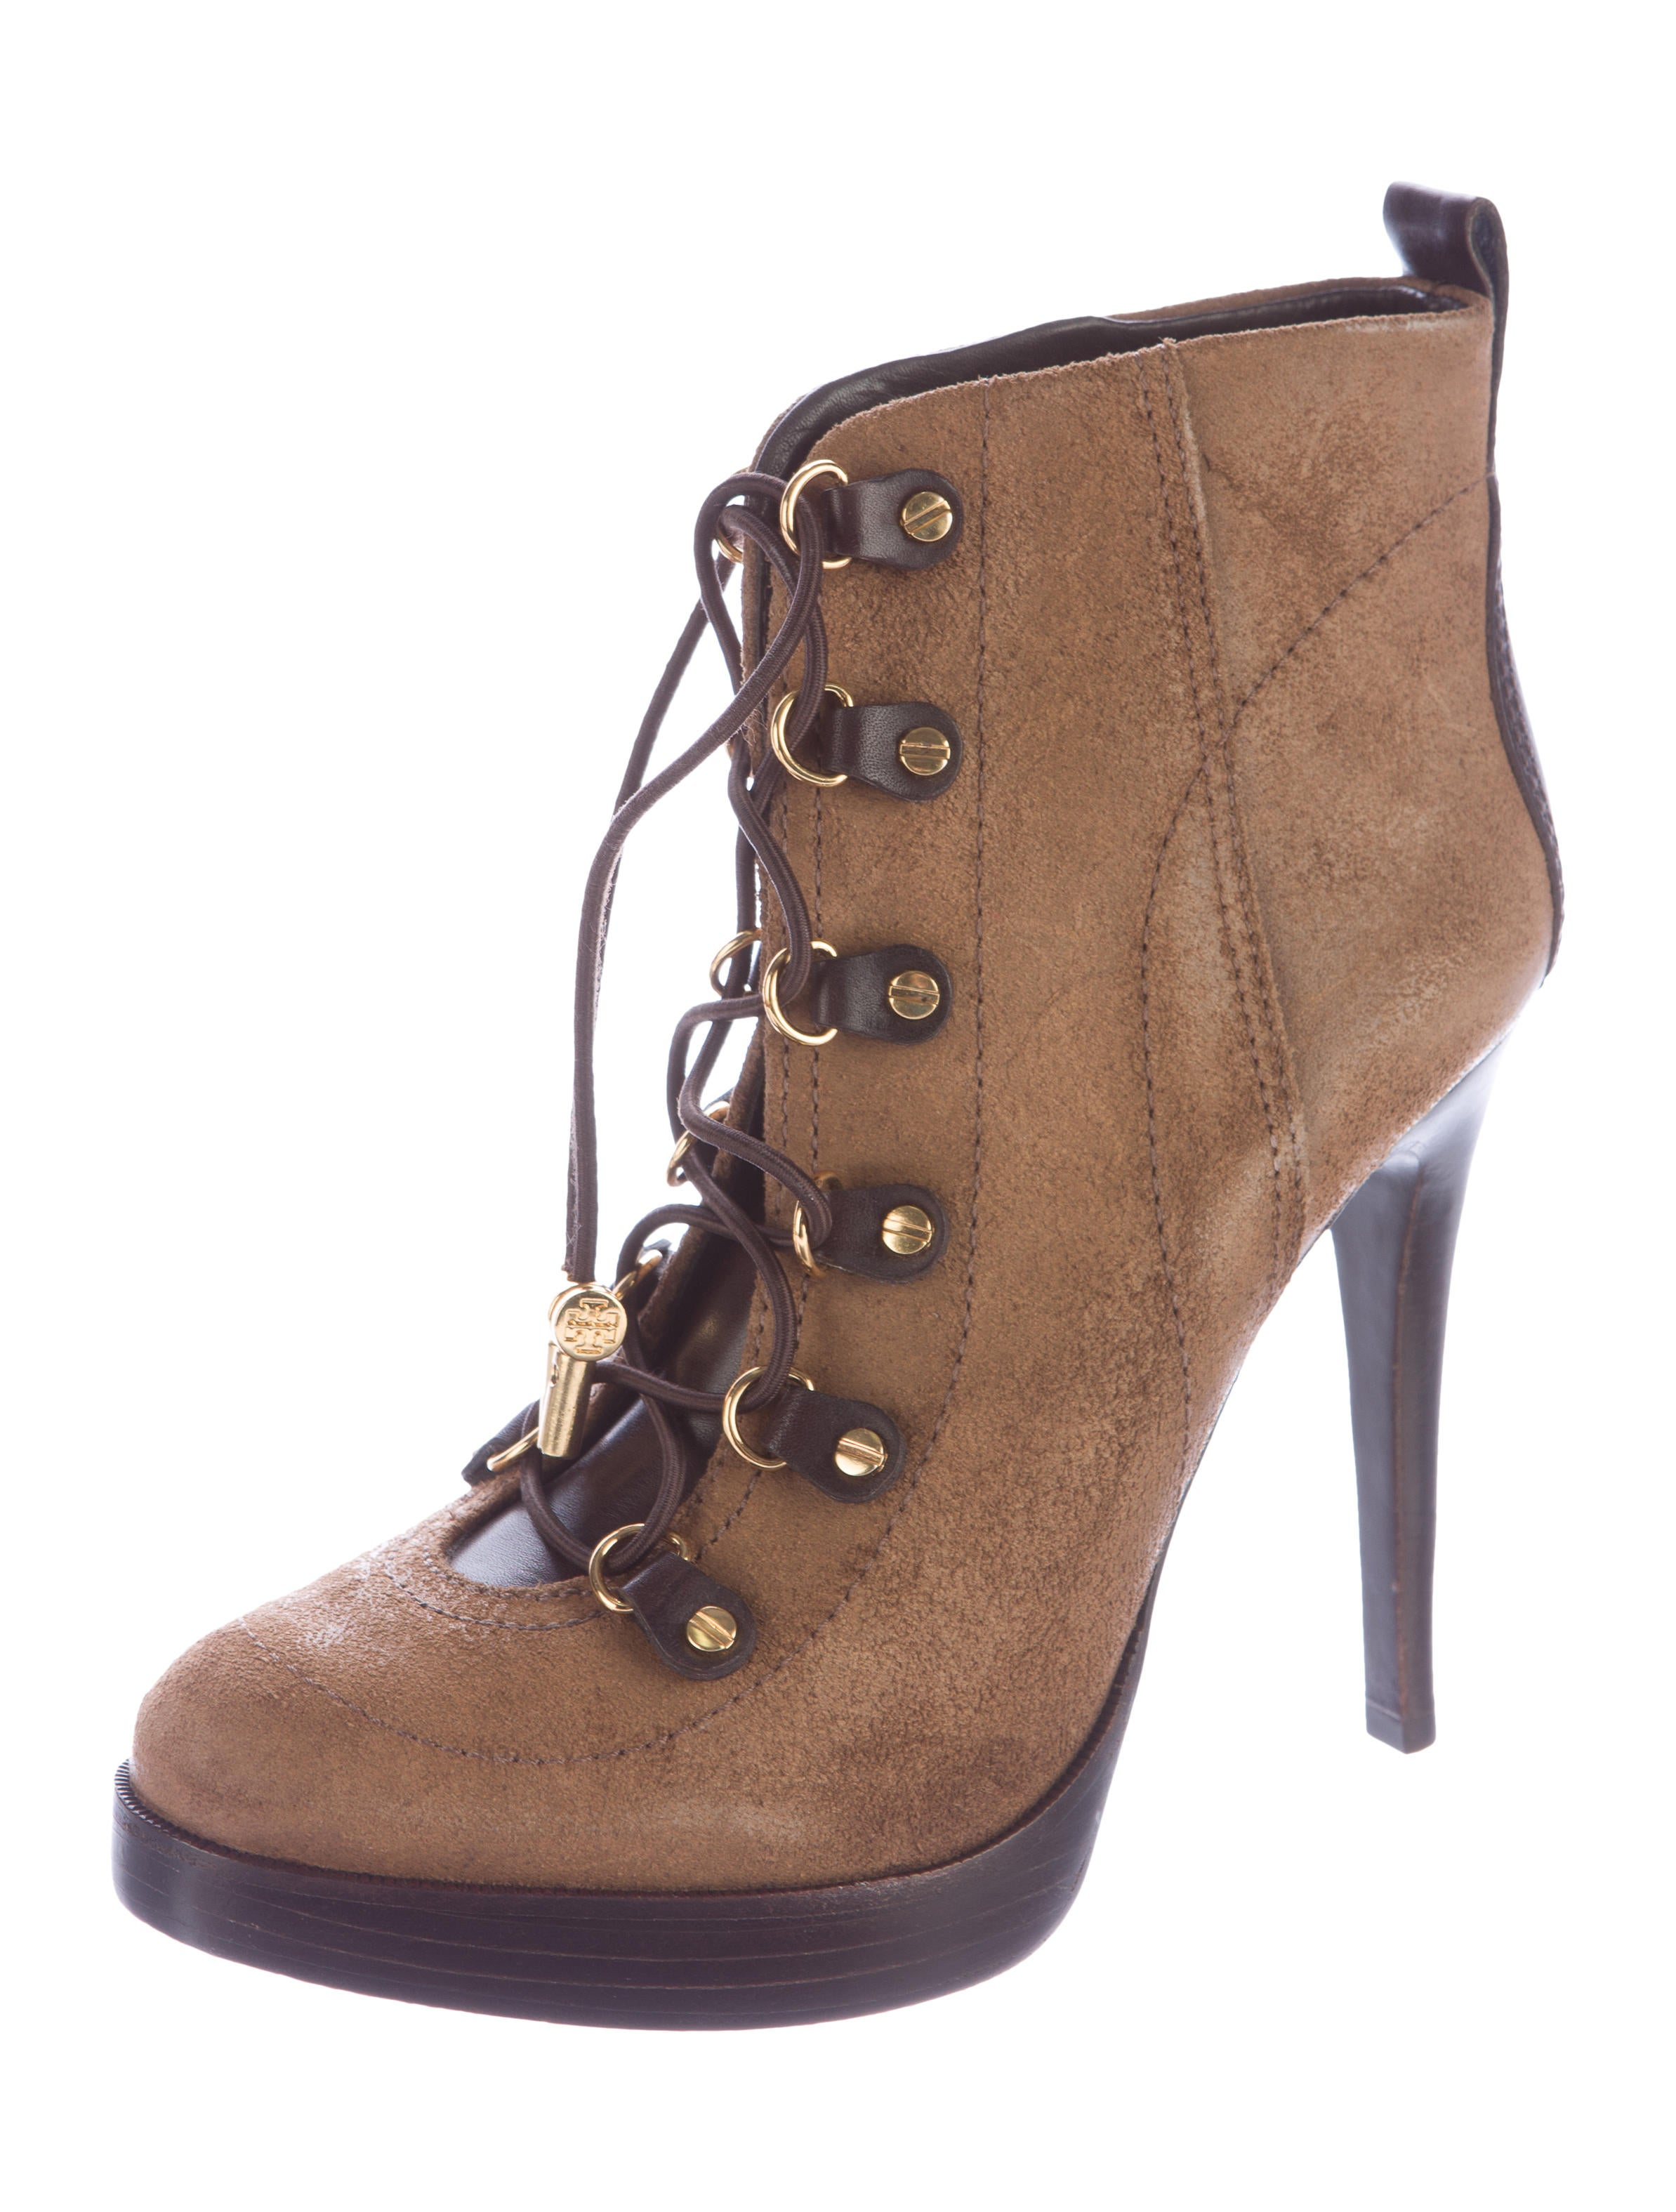 burch suede lace up ankle boots shoes wto77015